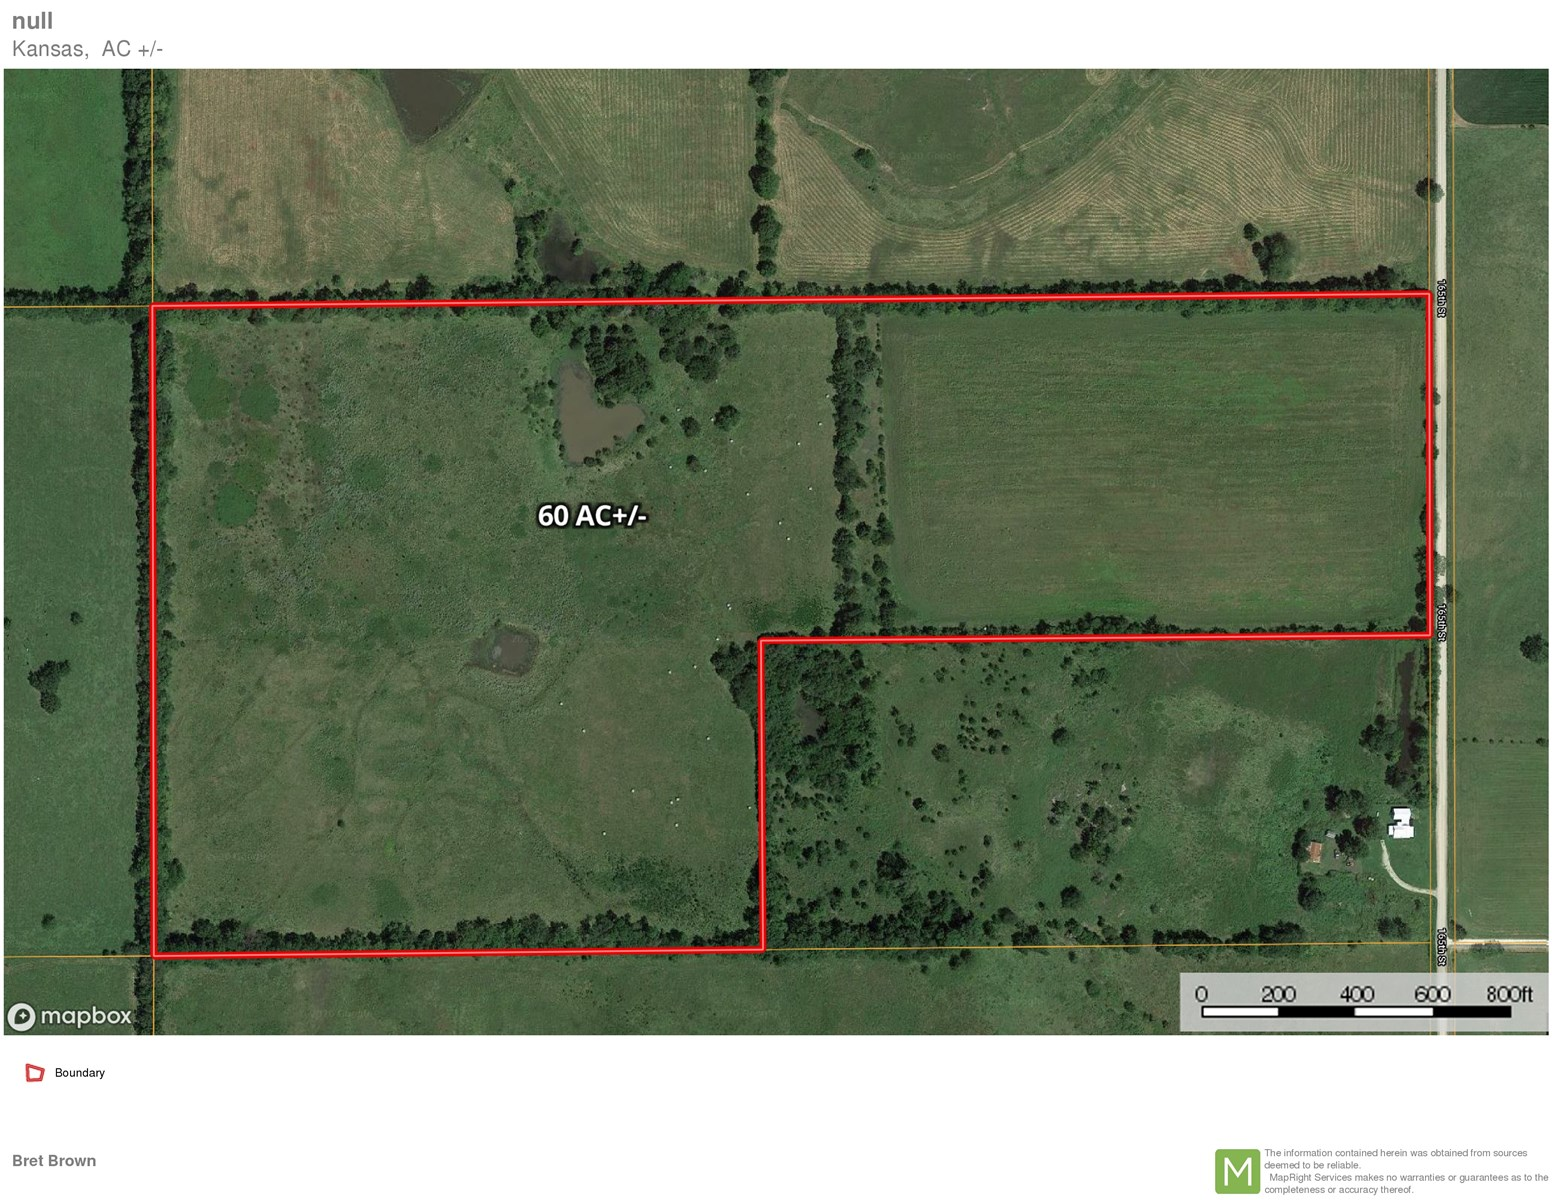 Land for Sale Fort Scott Kansas Bourbon County